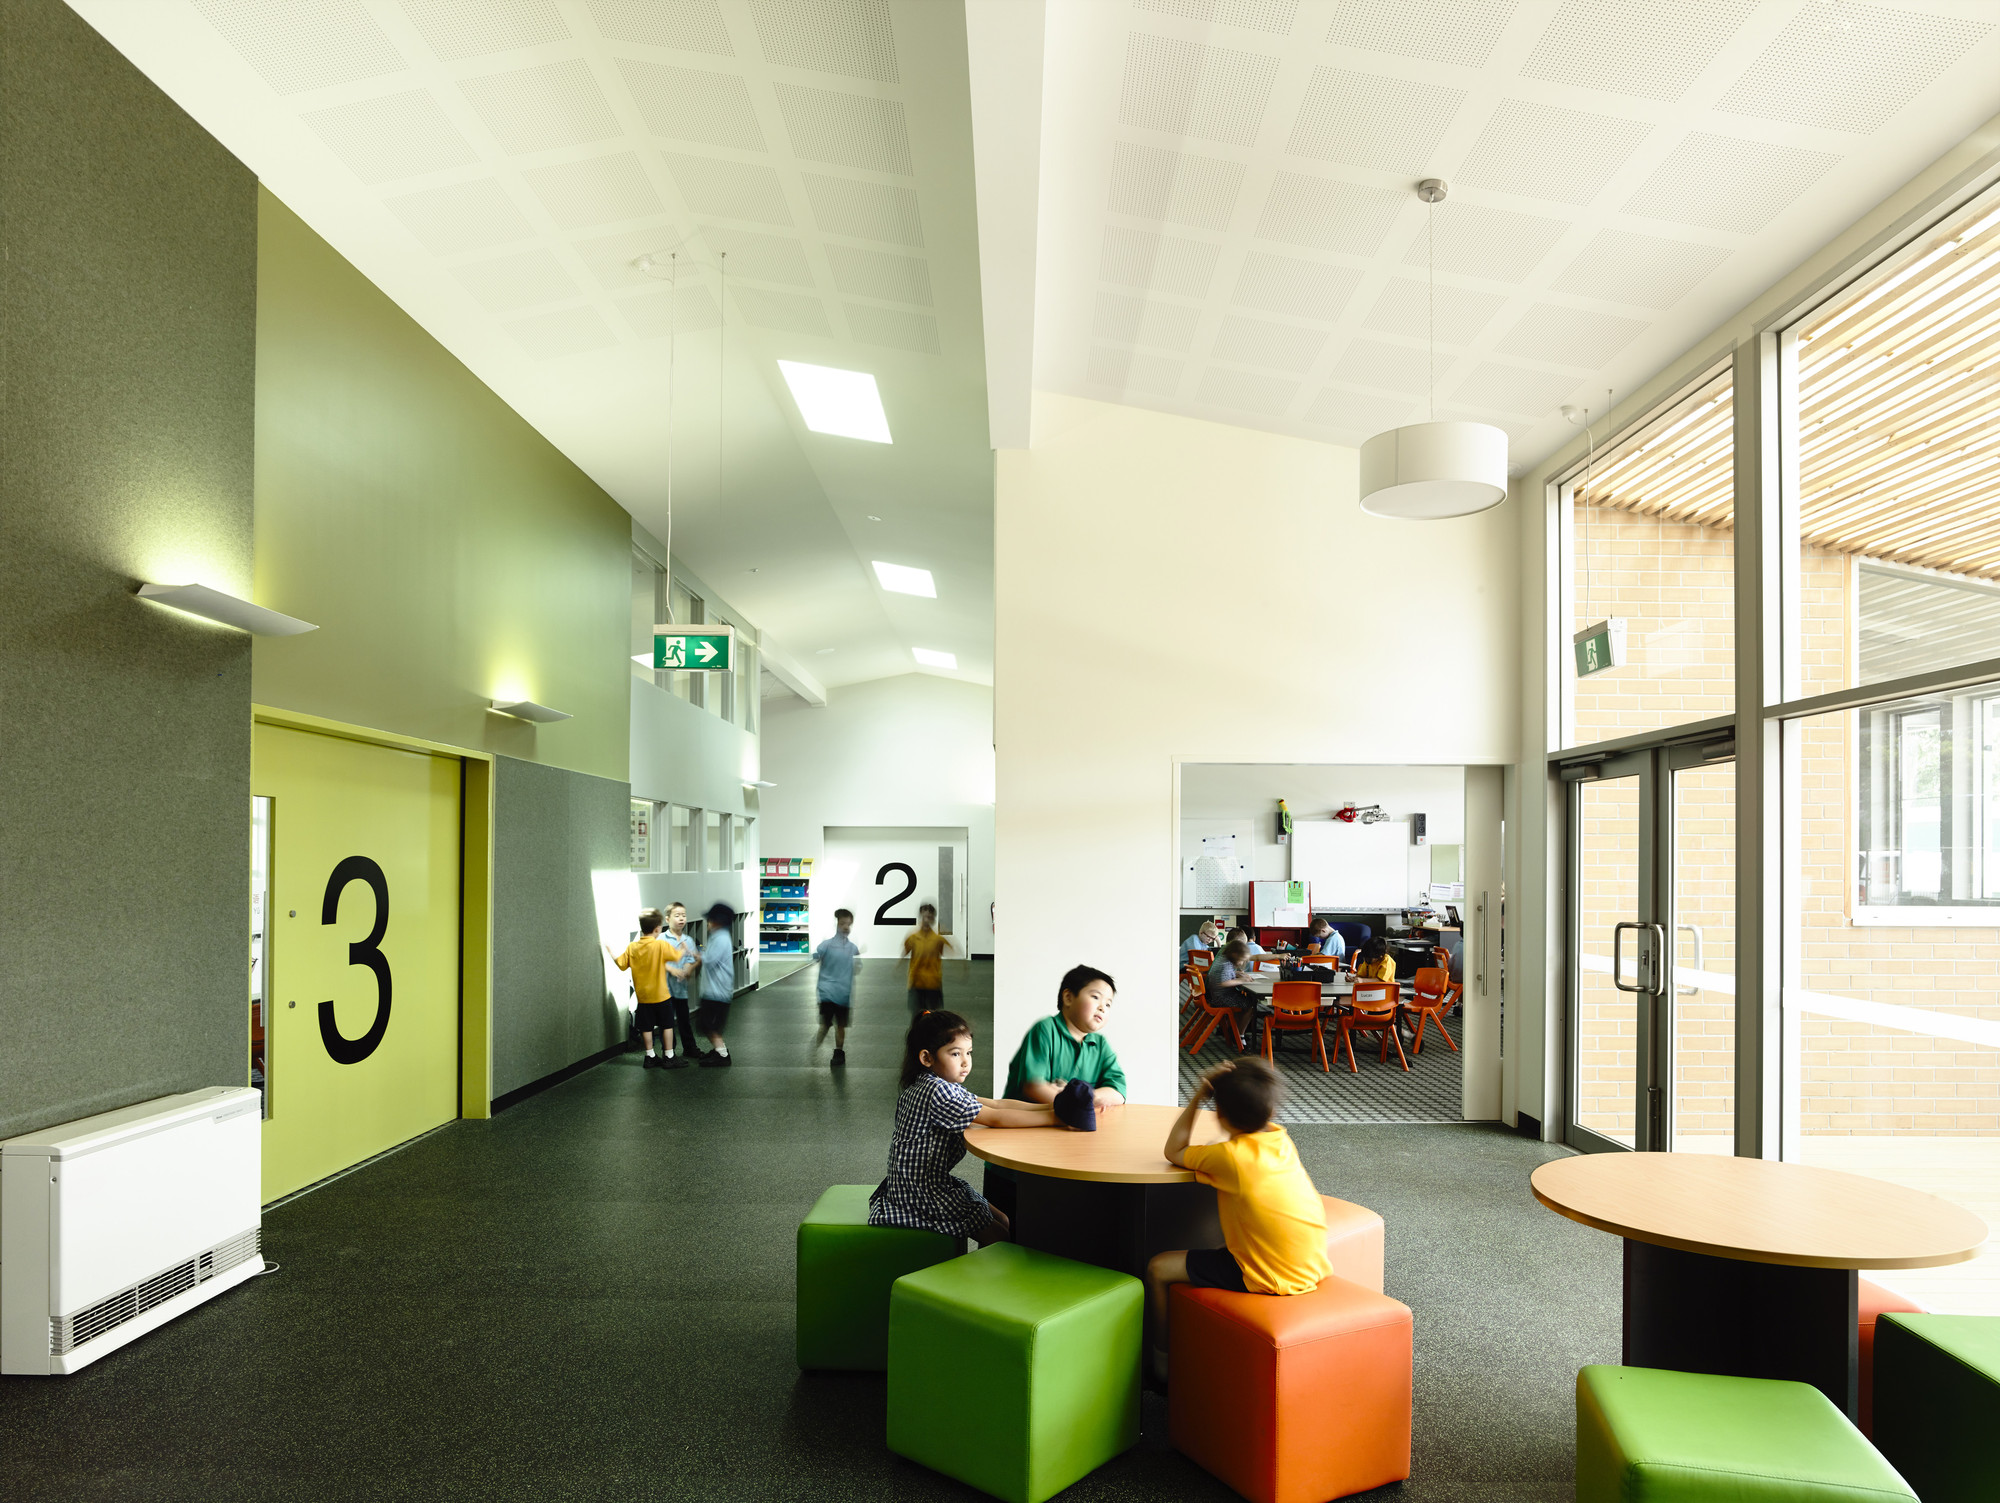 Sitzbank Kinder Garten Gallery Of Birralee Primary School / Kerstin Thompson